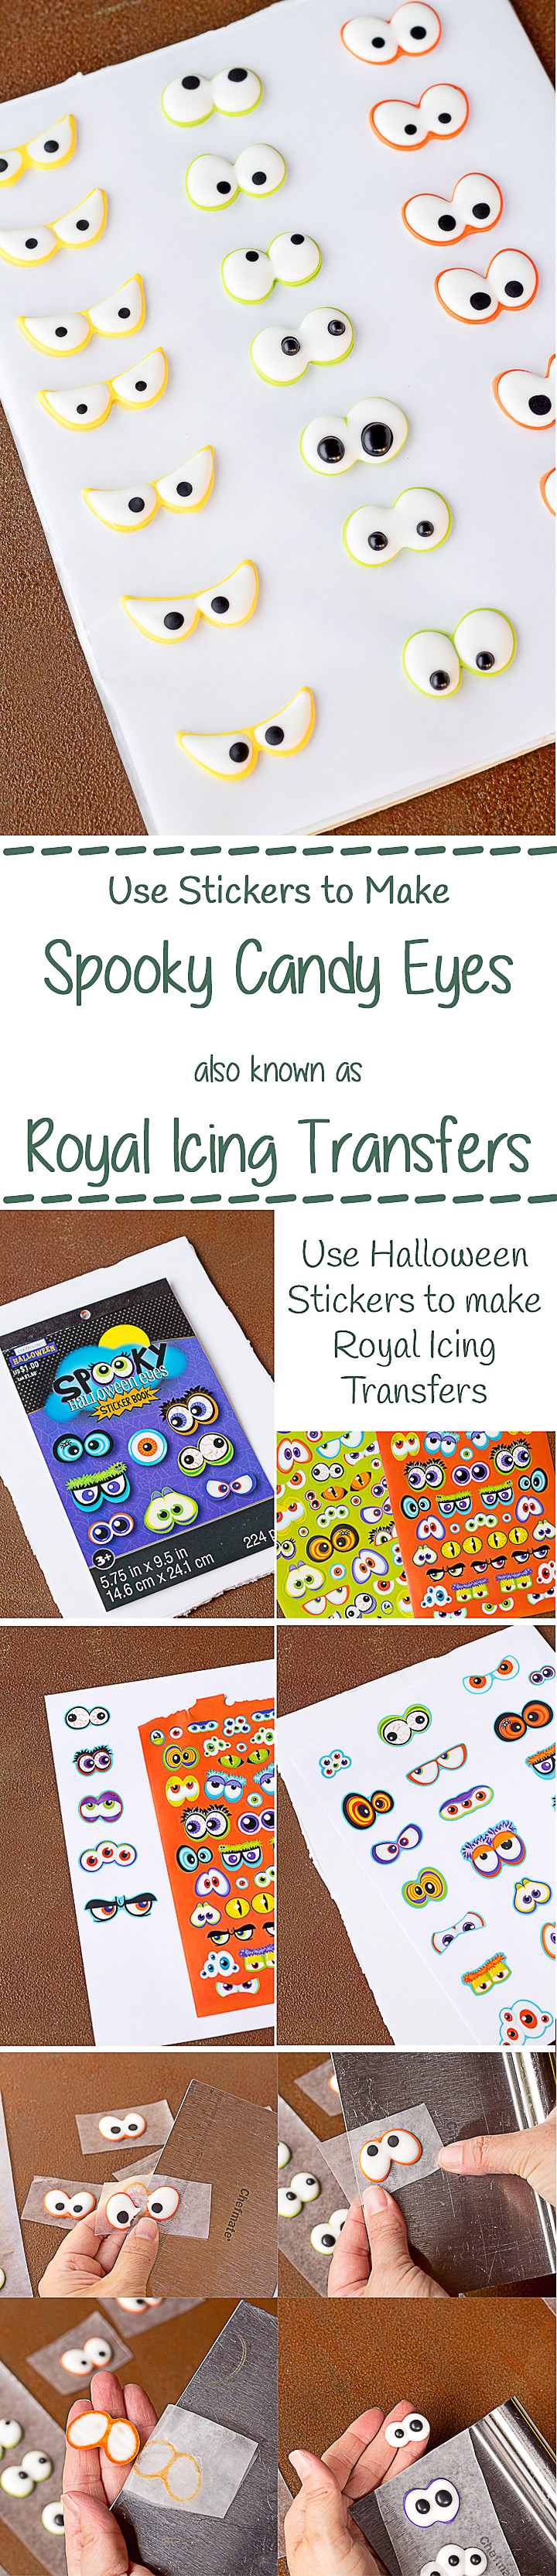 How to Make Spooky Eye Candy using Halloween Stickers with a How to Video   The Bearfoot Baker